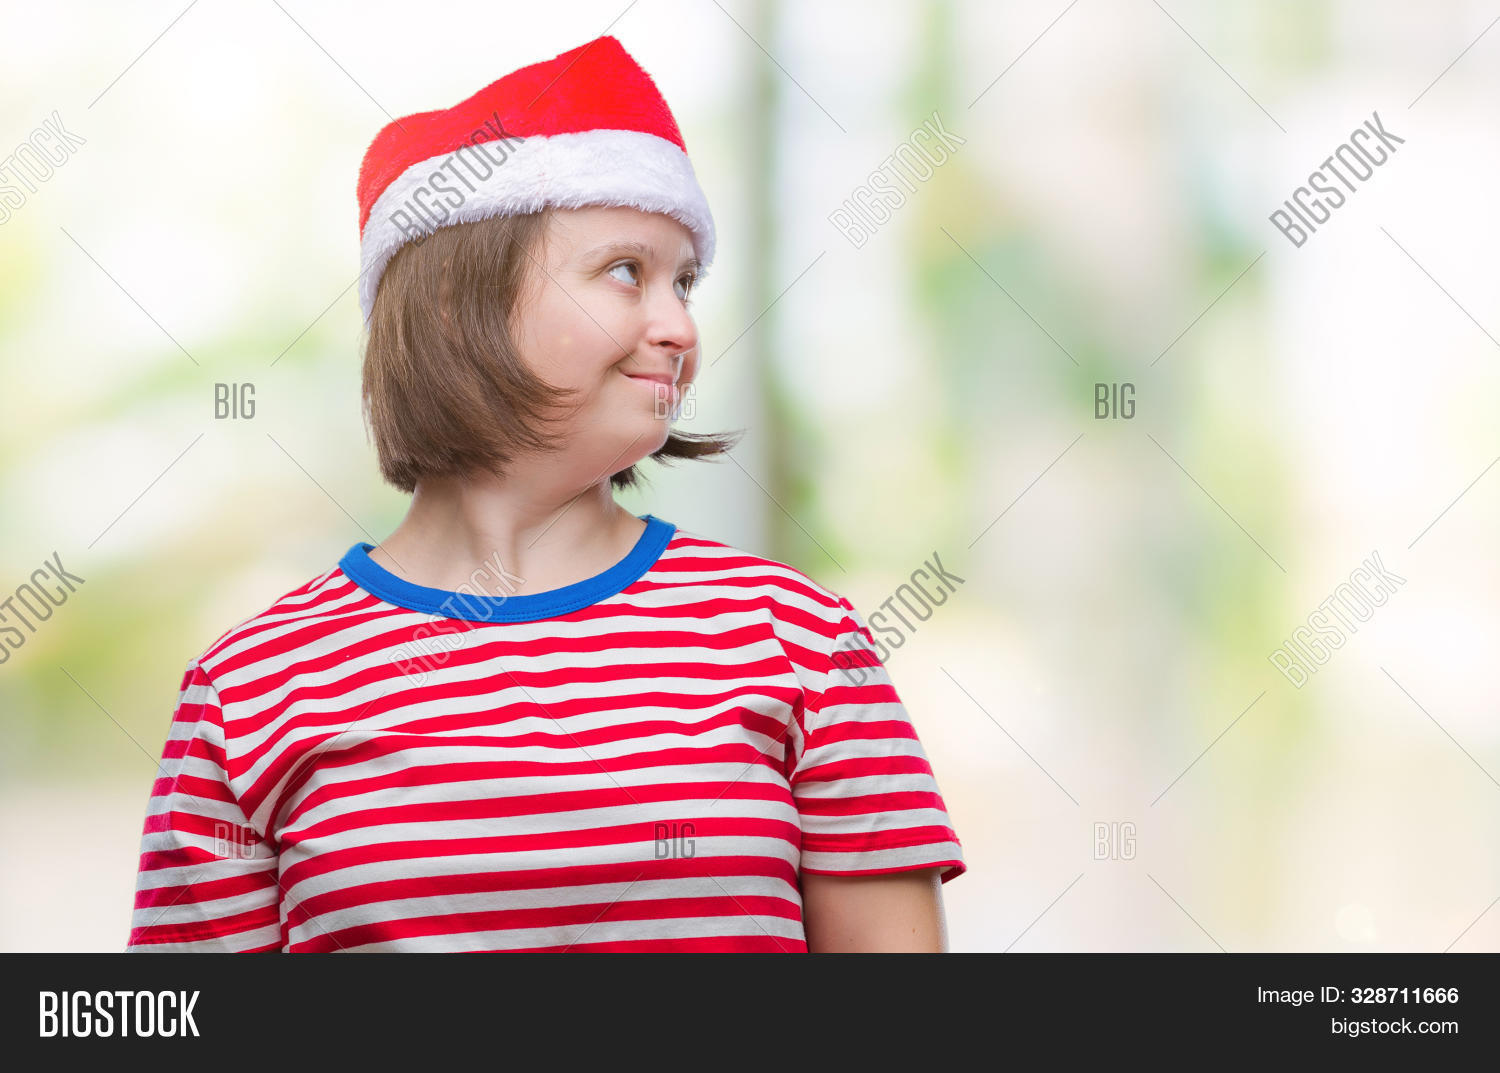 adult,away,background,celebration,cheerful,christmas,confident,disability,disabled,down,emotion,excited,expression,eye,face,fashion,great,handicapped,happiness,happy,hat,holiday,isolated,laugh,laughing,lifestyle,looking,merry,natural,people,perfect,person,portrait,profile,red,relax,santa claus,side,skin,smile,smiling,sweater,syndrome,teeth,thinking,trust,vacation,view,winter,woman